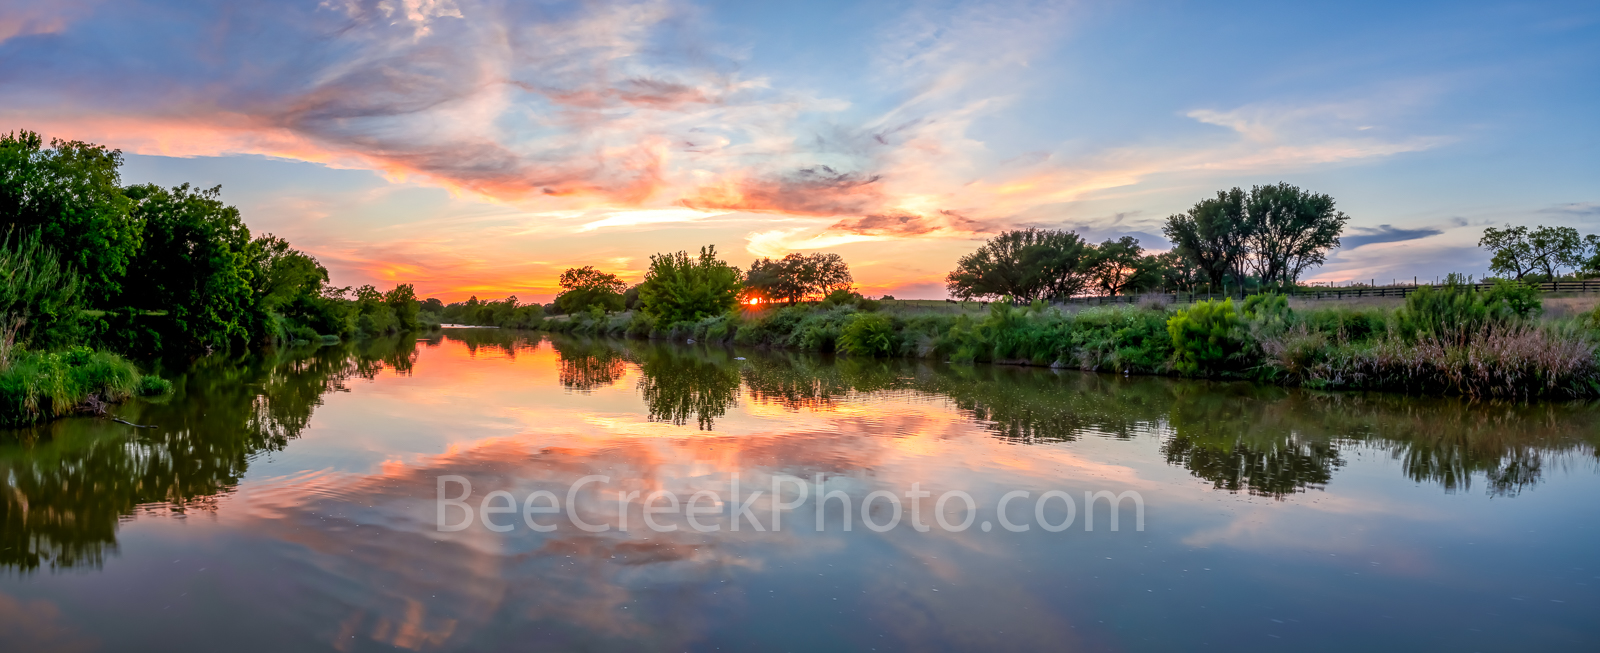 Texas Hill Country Sunset, Texas Hill country, sunset, Pedernales river, landscape, panorama, pano, water, river, trees, rurals, Colorado river, centrral texas, hill country, Texas. rural,LBJ Ranch, J